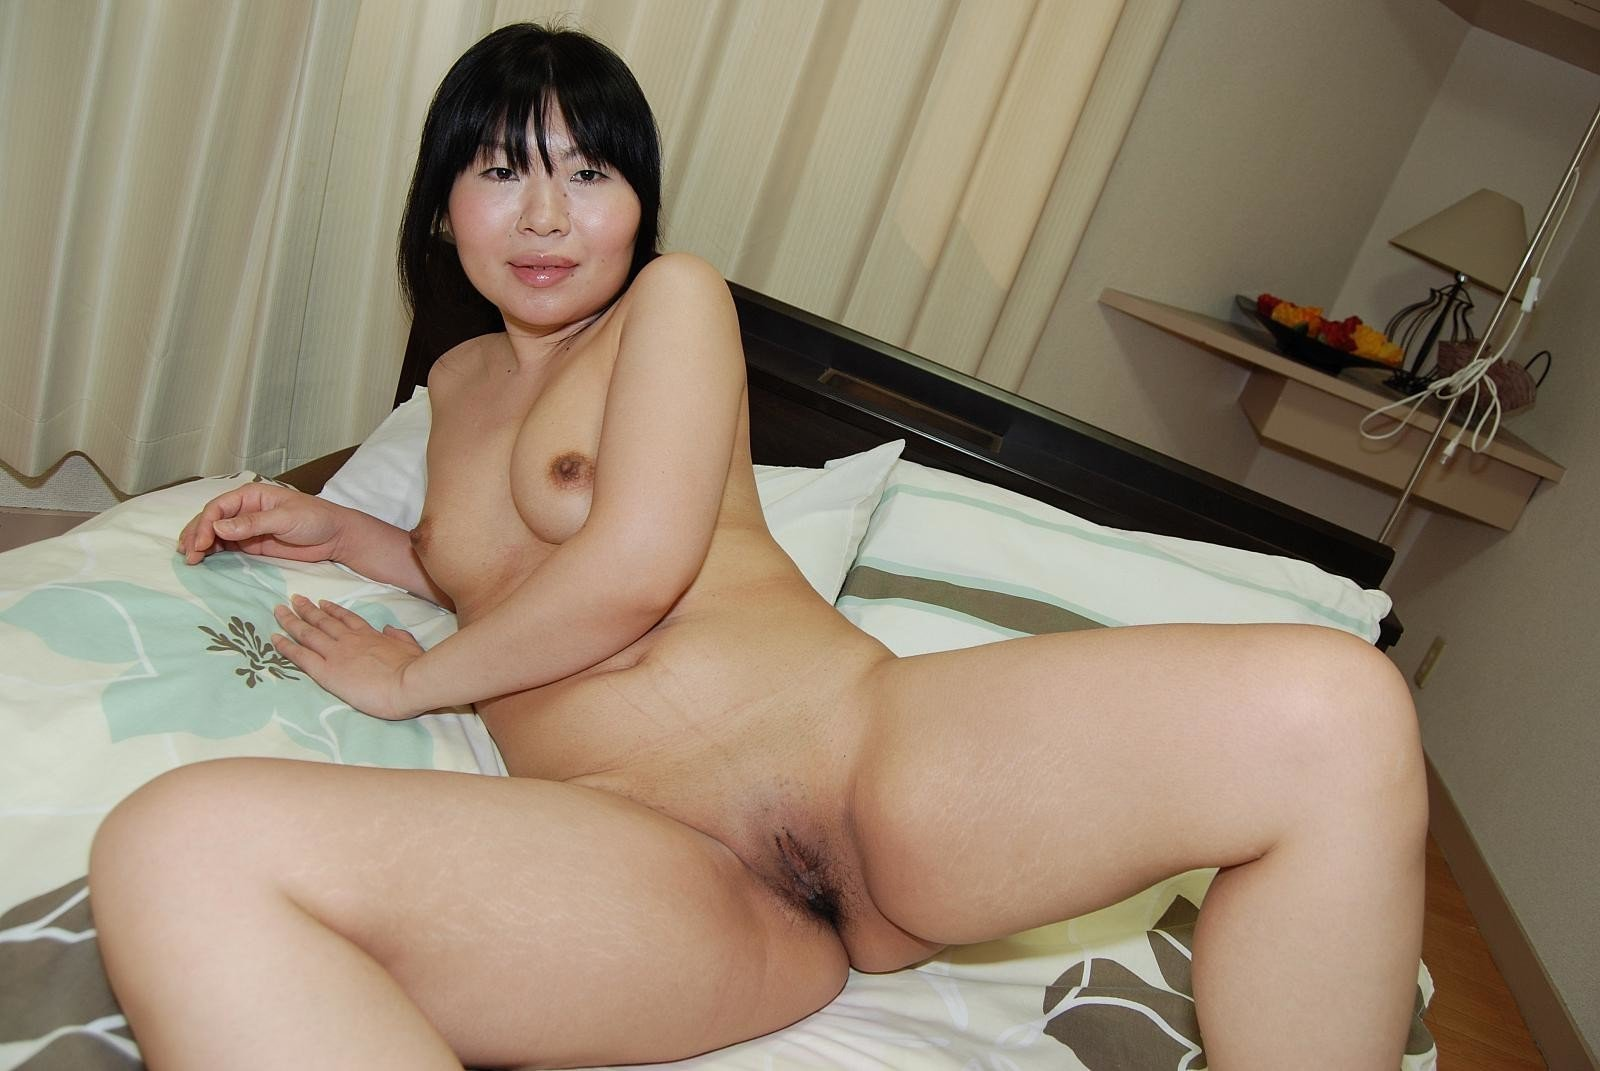 nude-mature-japanese-anime-girl-japan